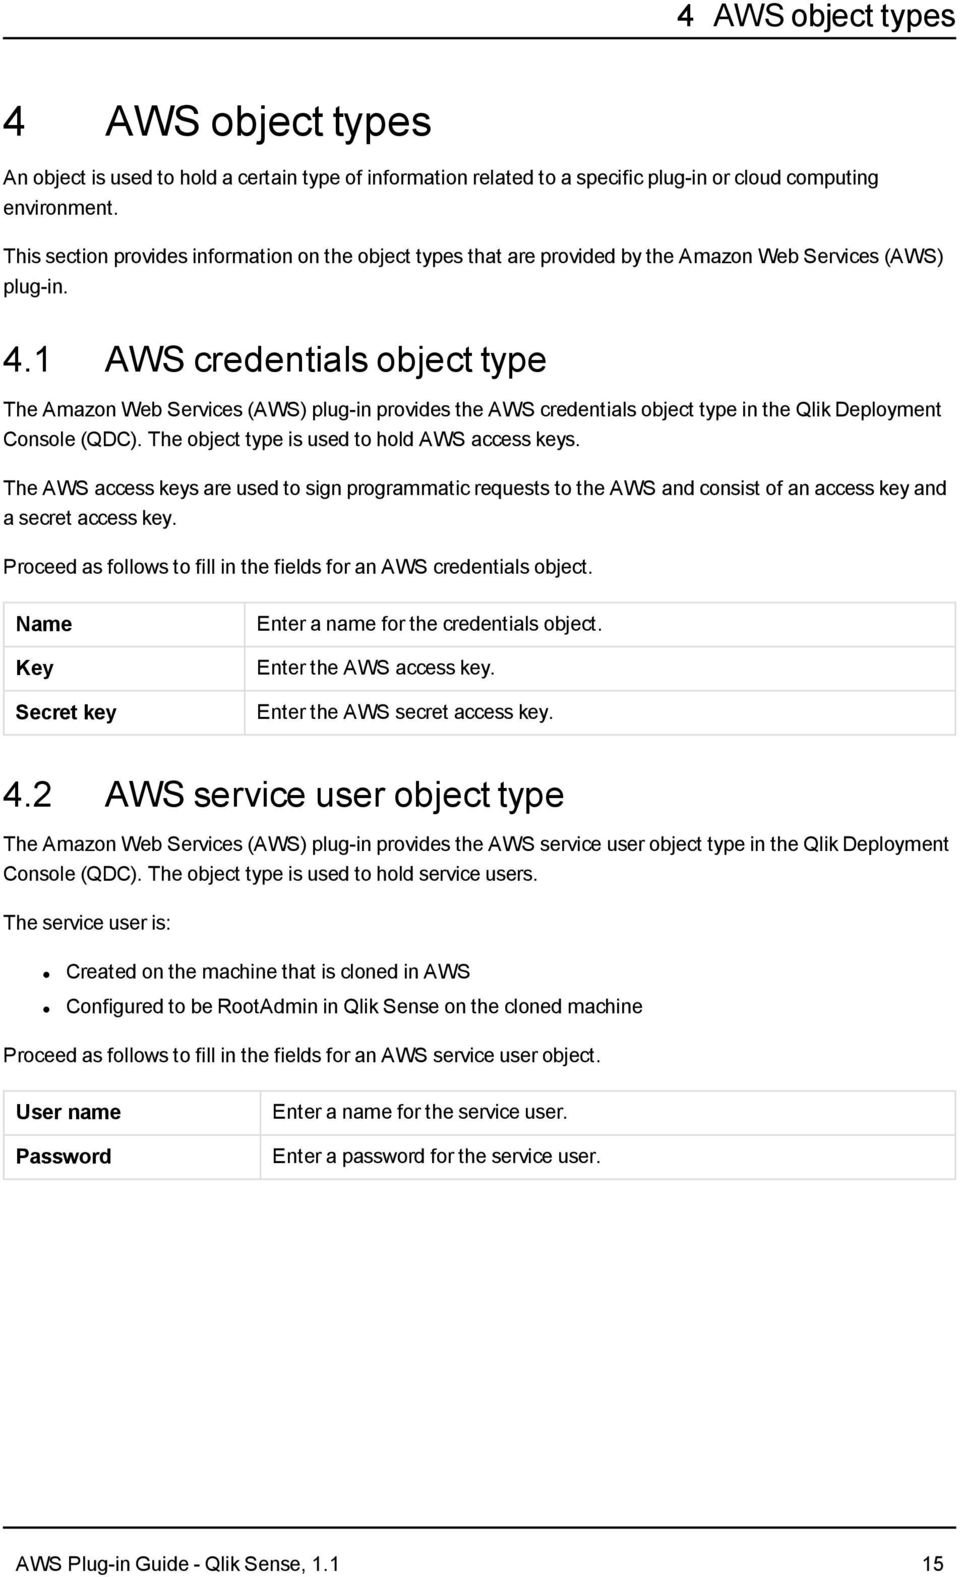 1 AWS credentials object type The Amazon Web Services (AWS) plug-in provides the AWS credentials object type in the Qlik Deployment Console (QDC). The object type is used to hold AWS access keys.